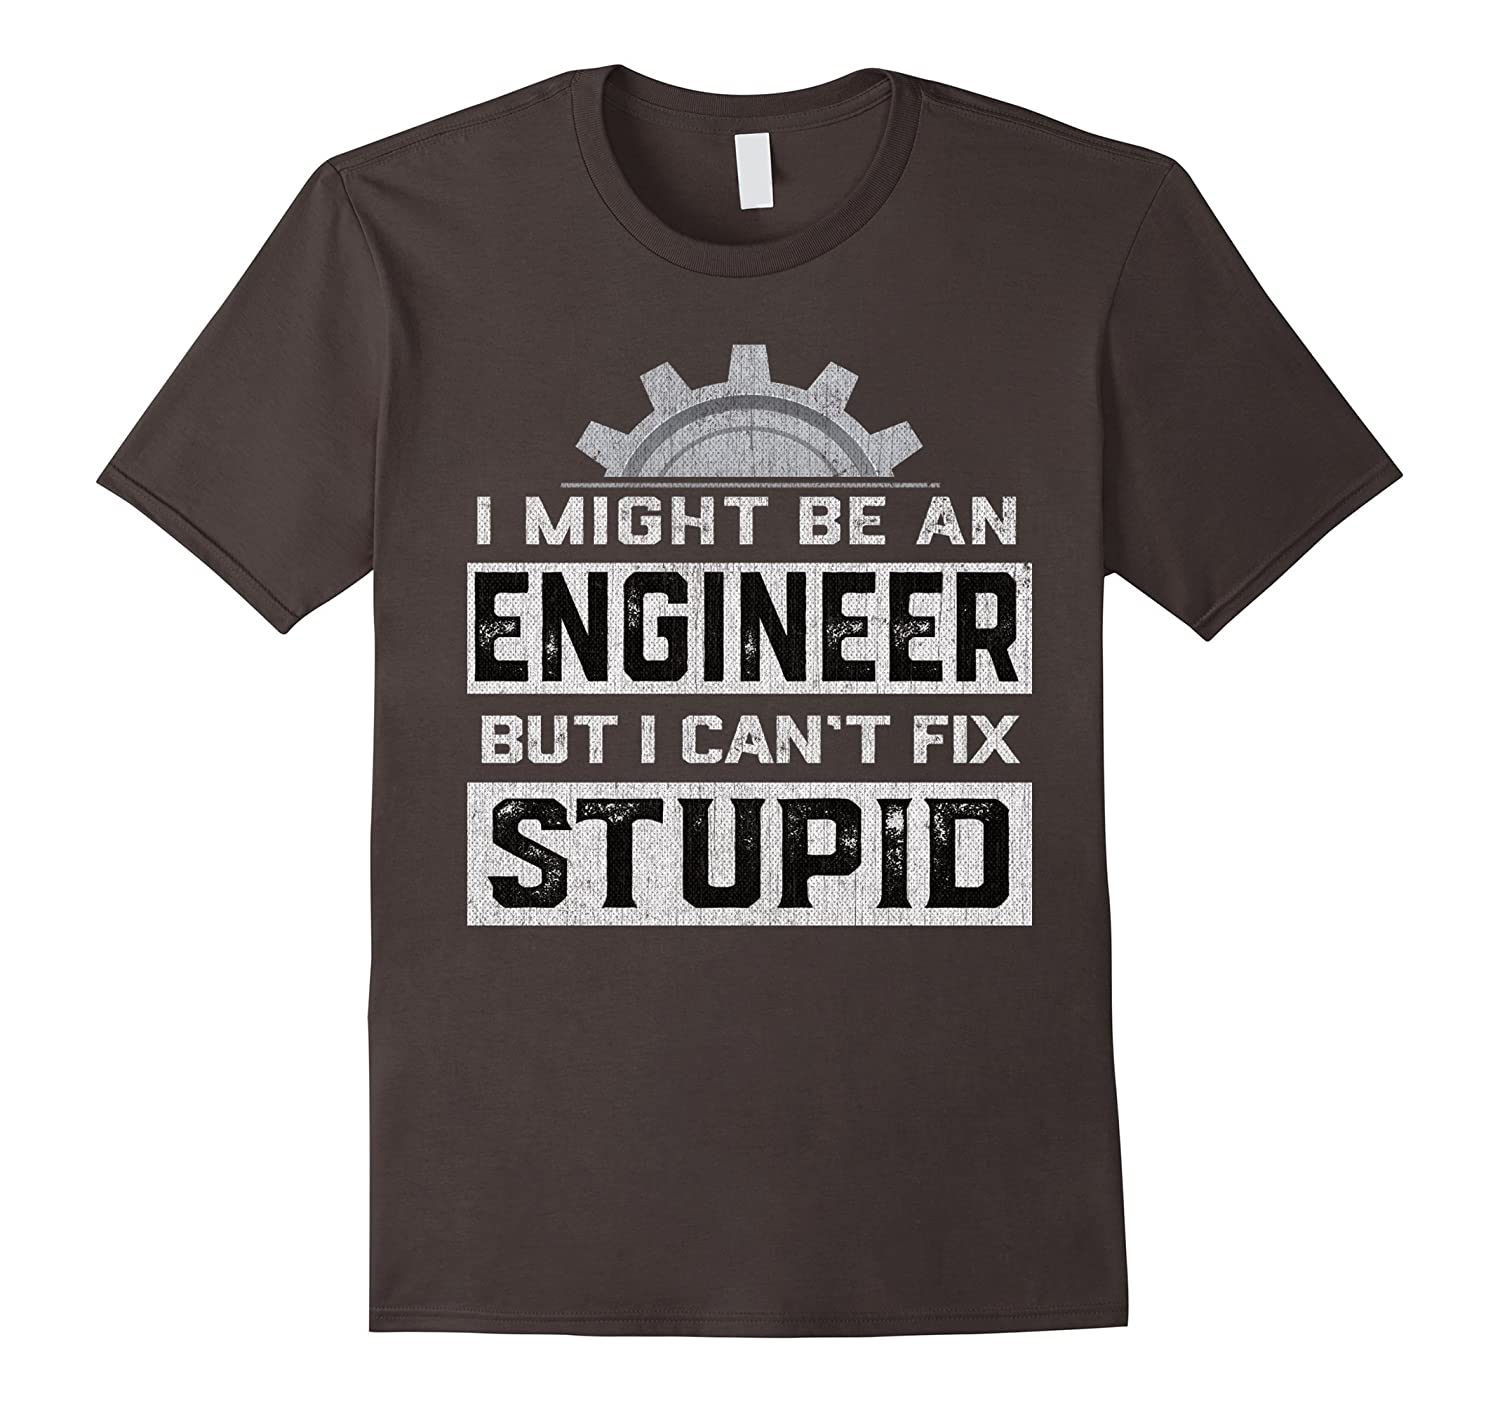 I Might Be An Engineer But I Can't Fix Stupid Funny T-Shirt